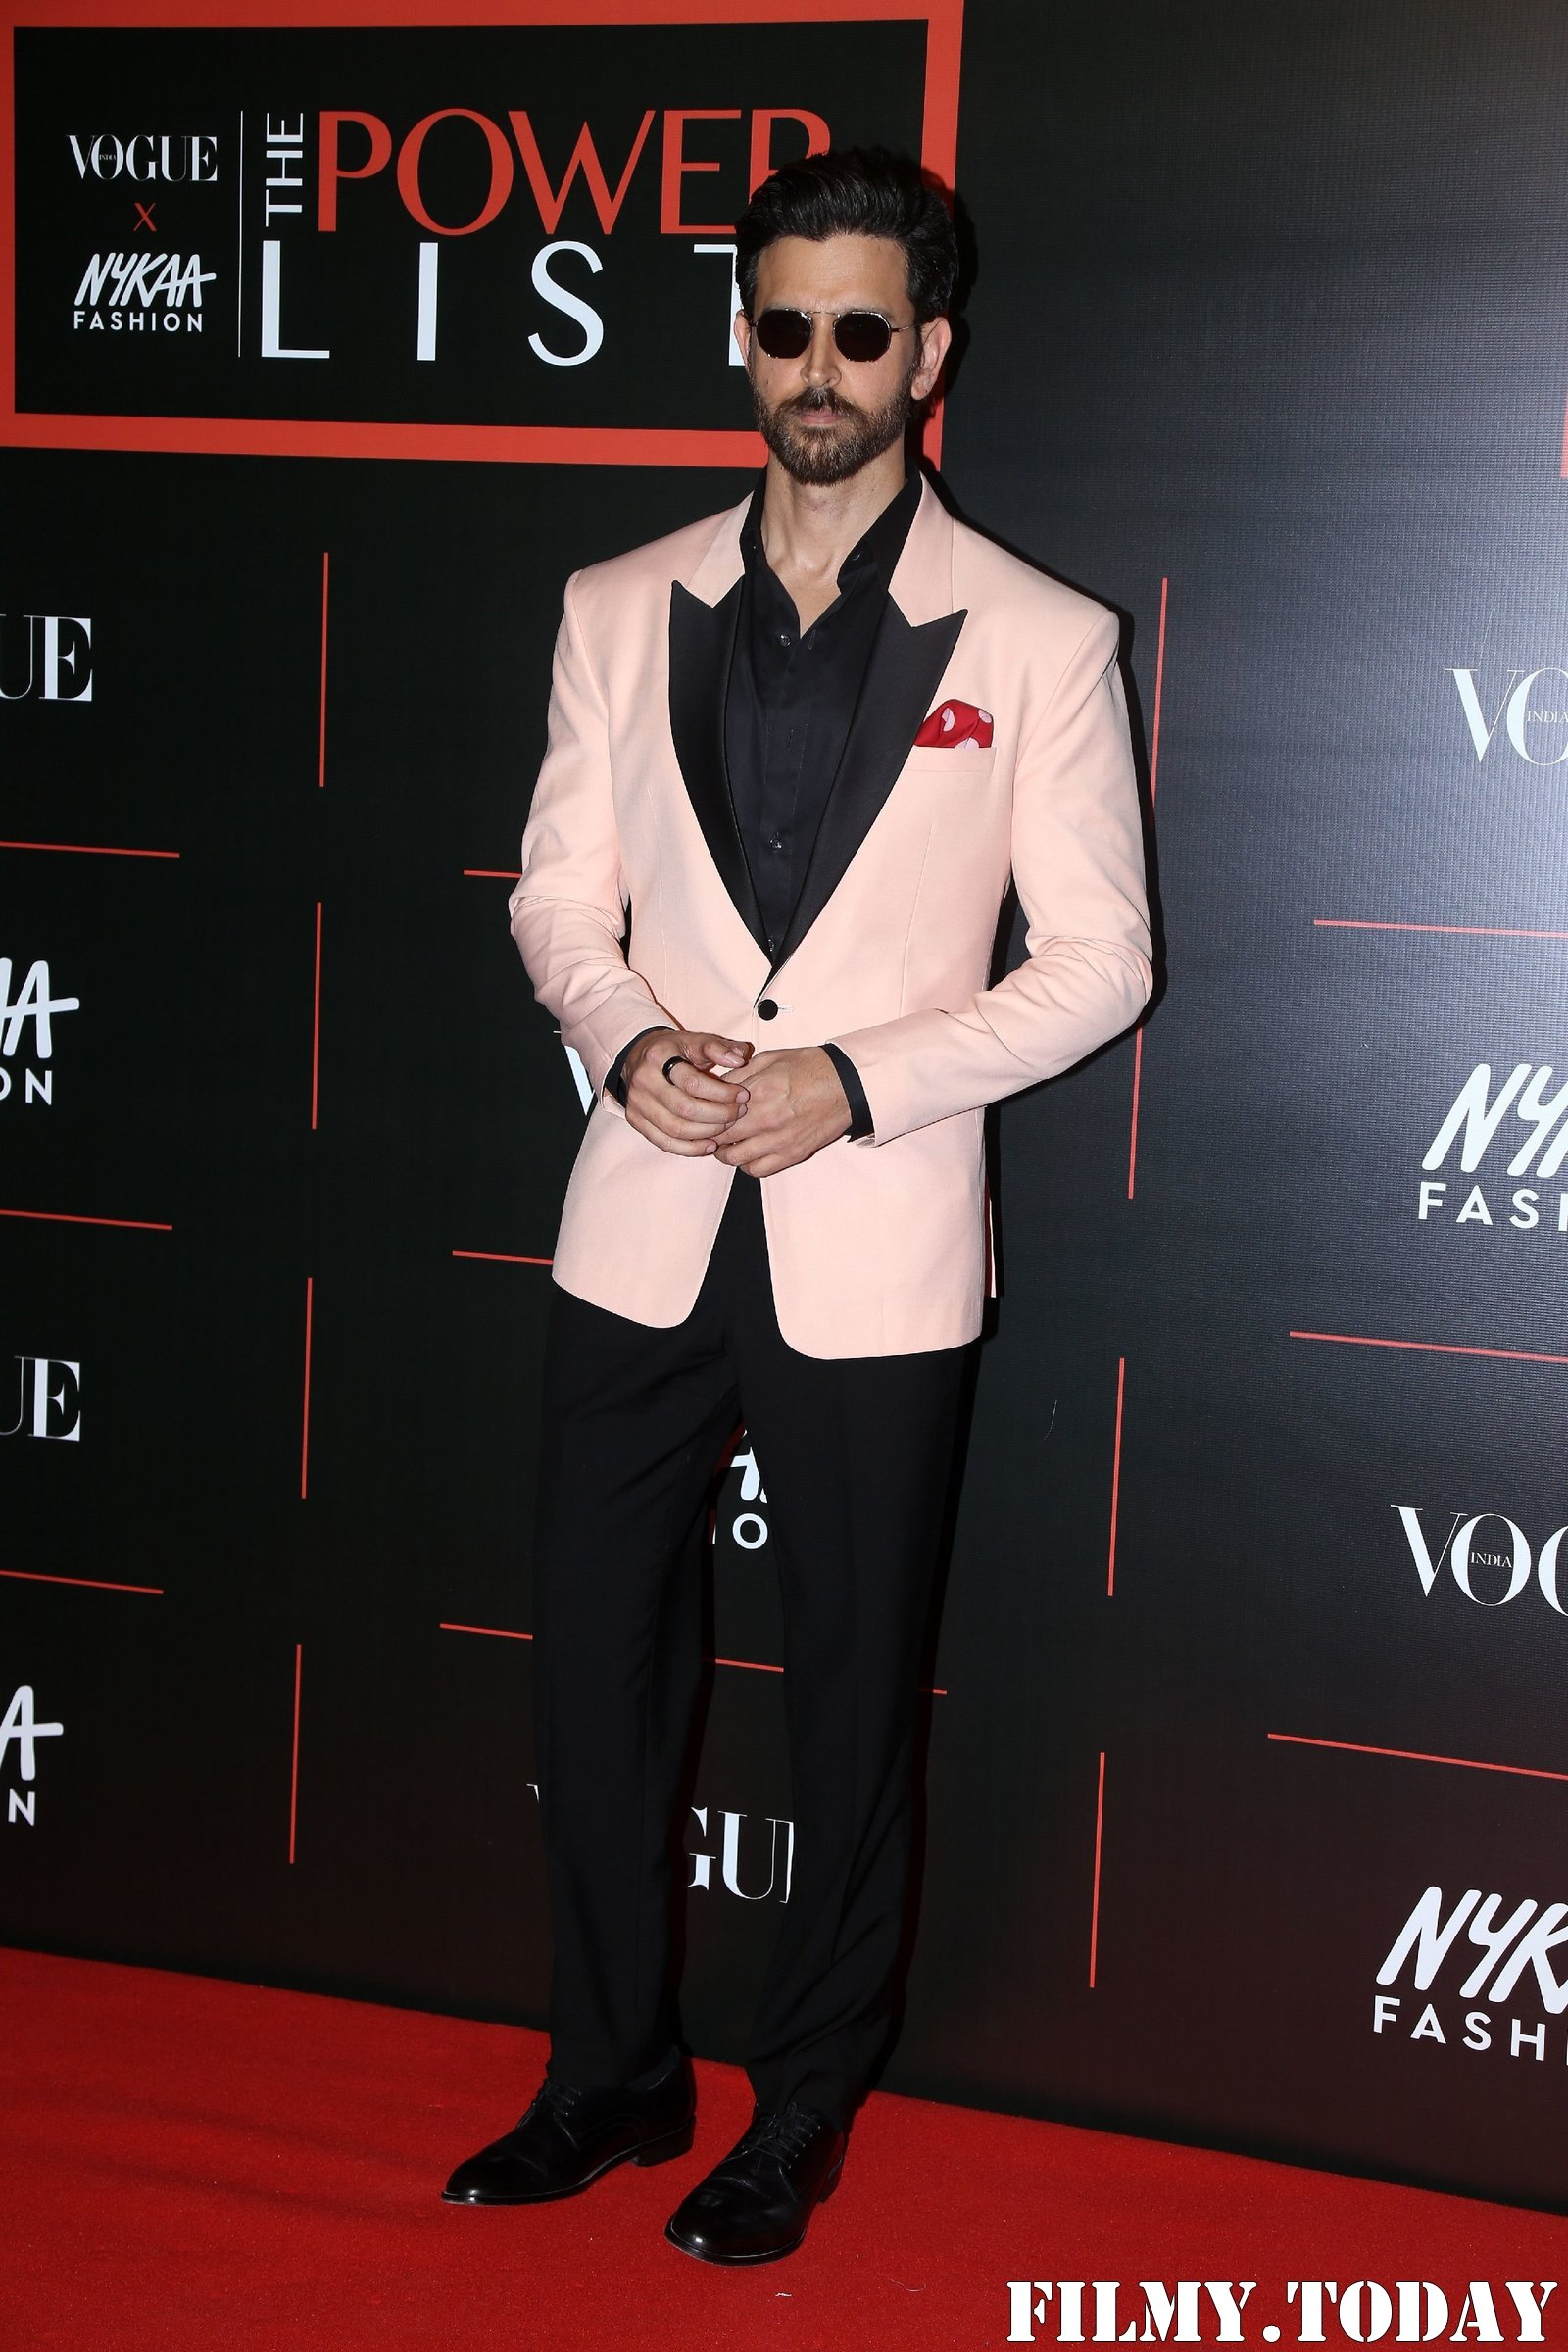 Hrithik Roshan - Photos: Celebs At Vogue The Power List 2019 At St Regis Hotel | Picture 1706333